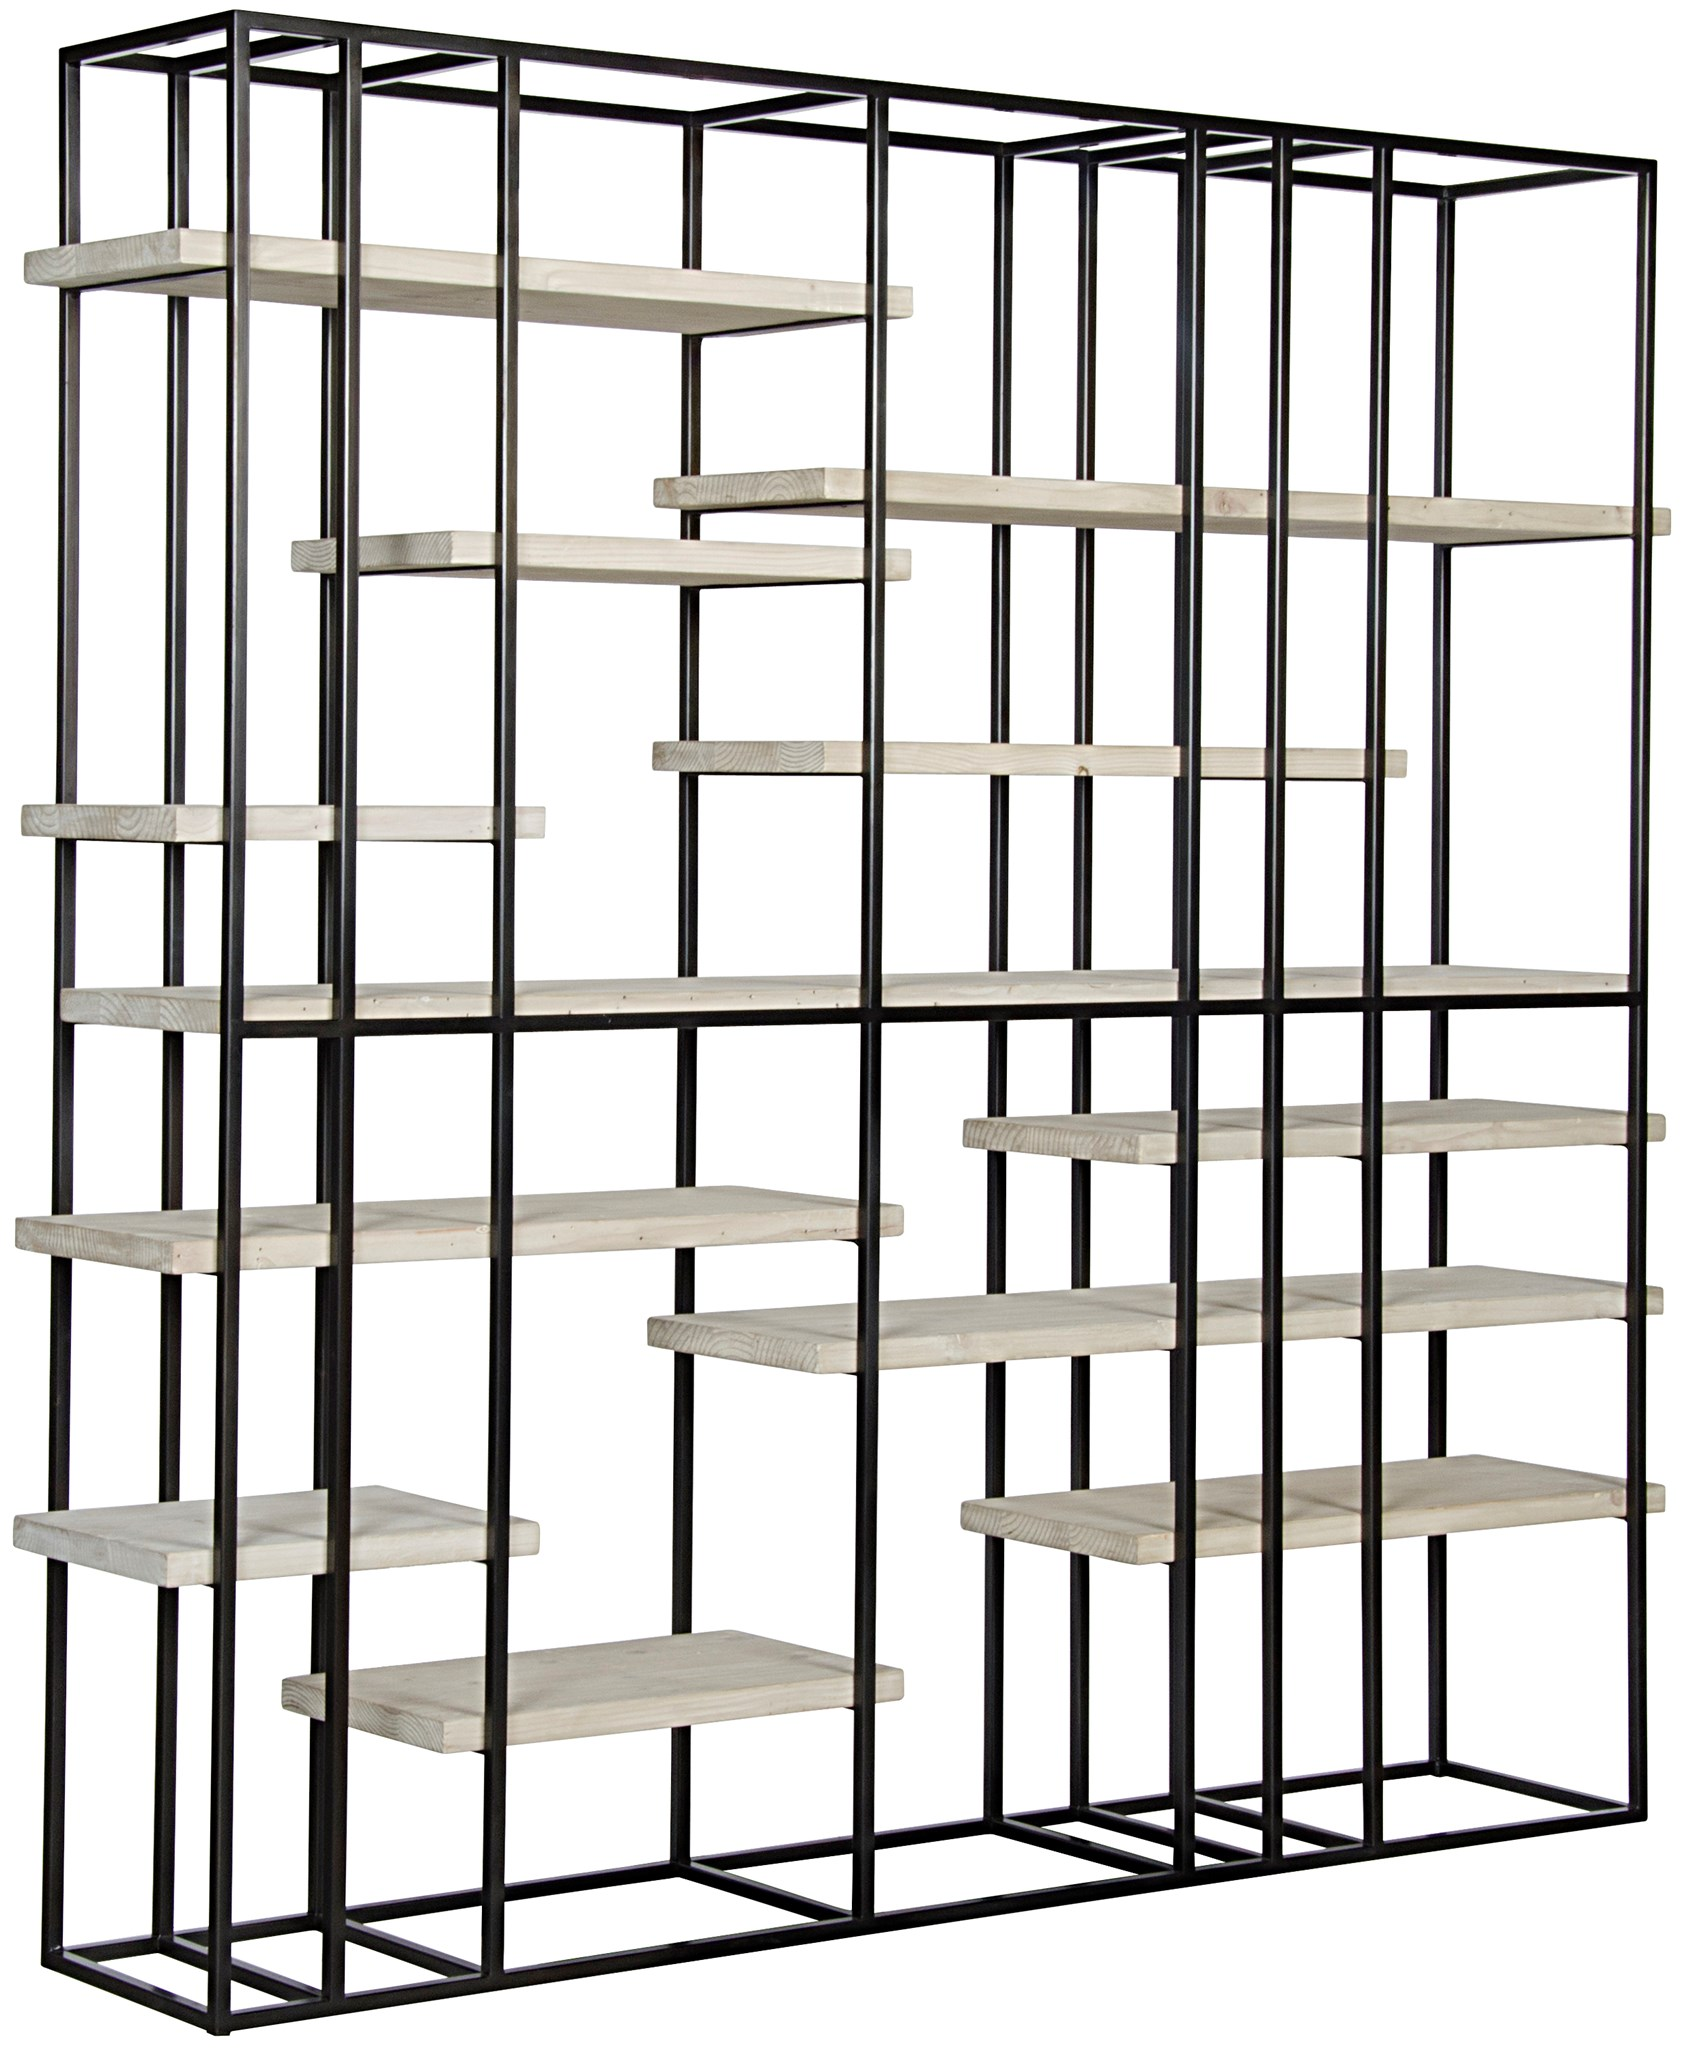 shelf new bookcase steel shelves p combination book wood bookshelf